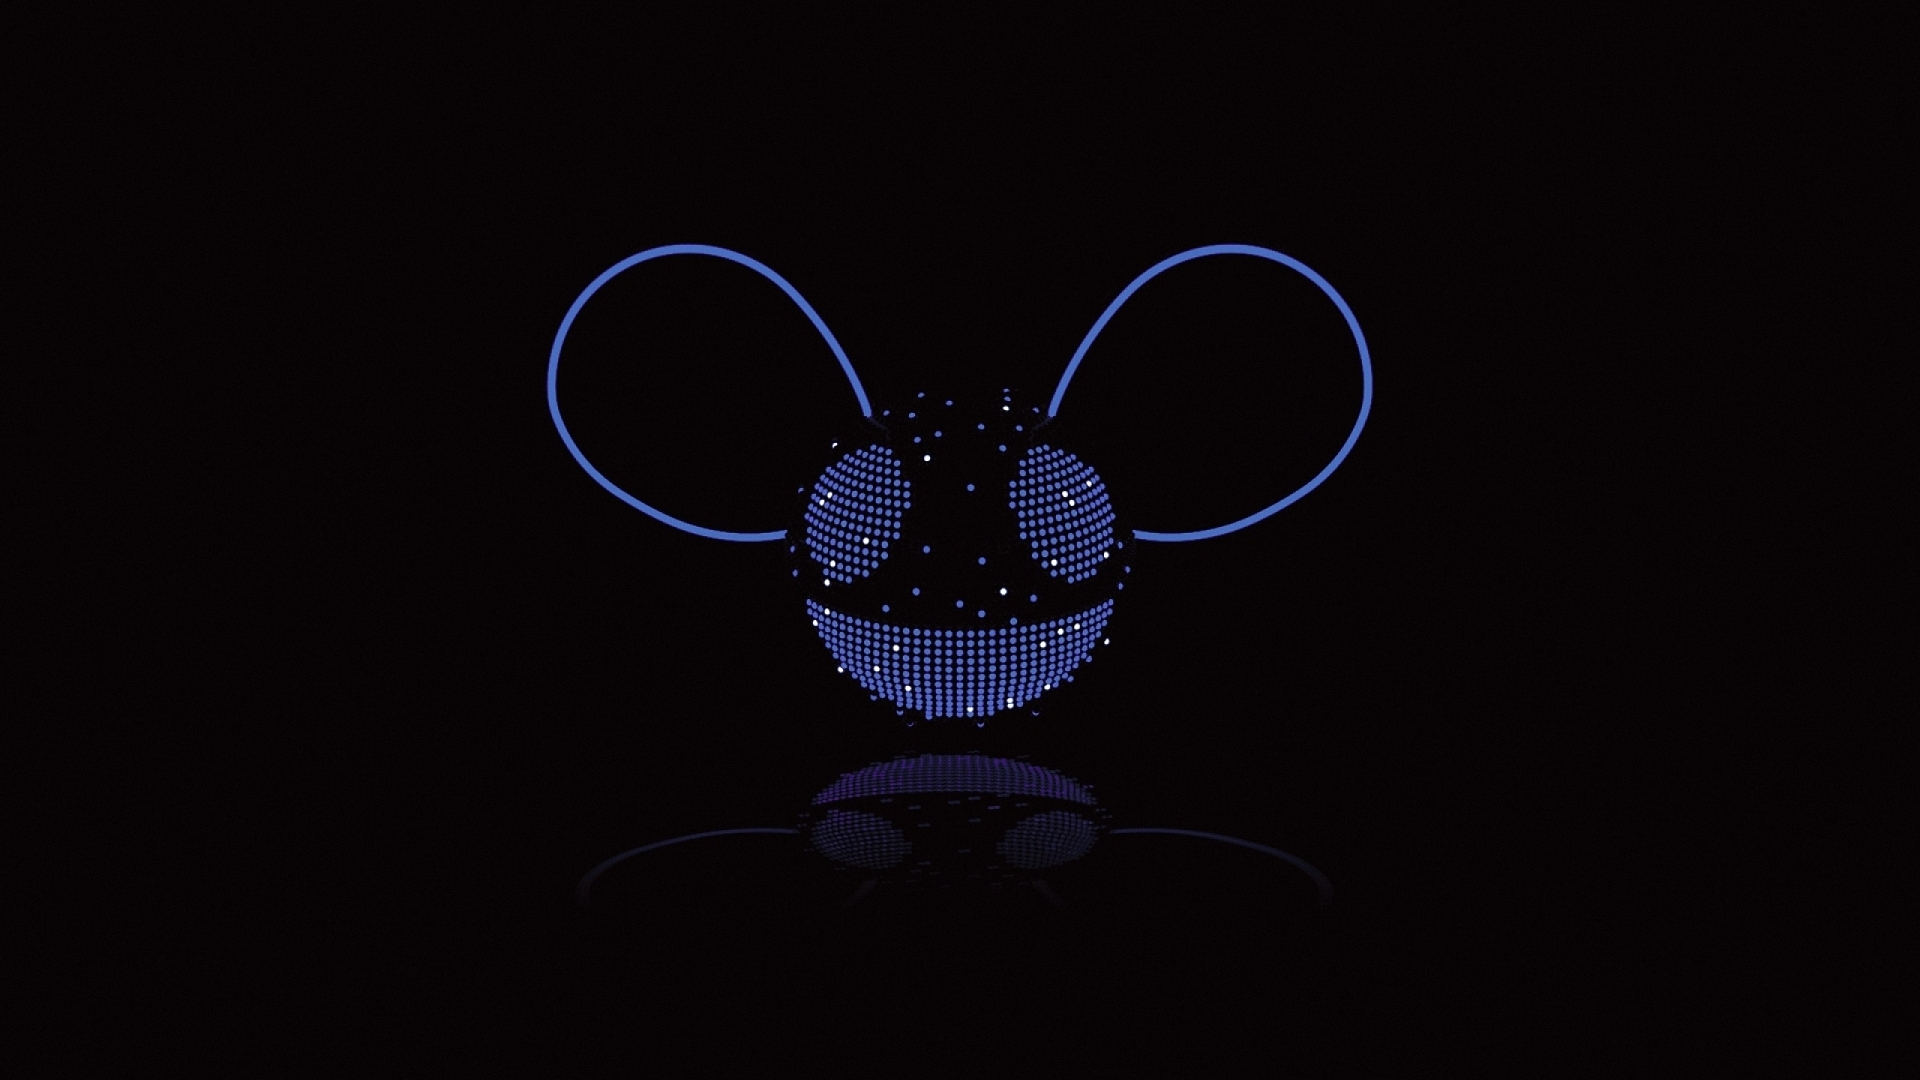 free 1920x1080 deadmau5 electronic music wallpapers full hd 1080p